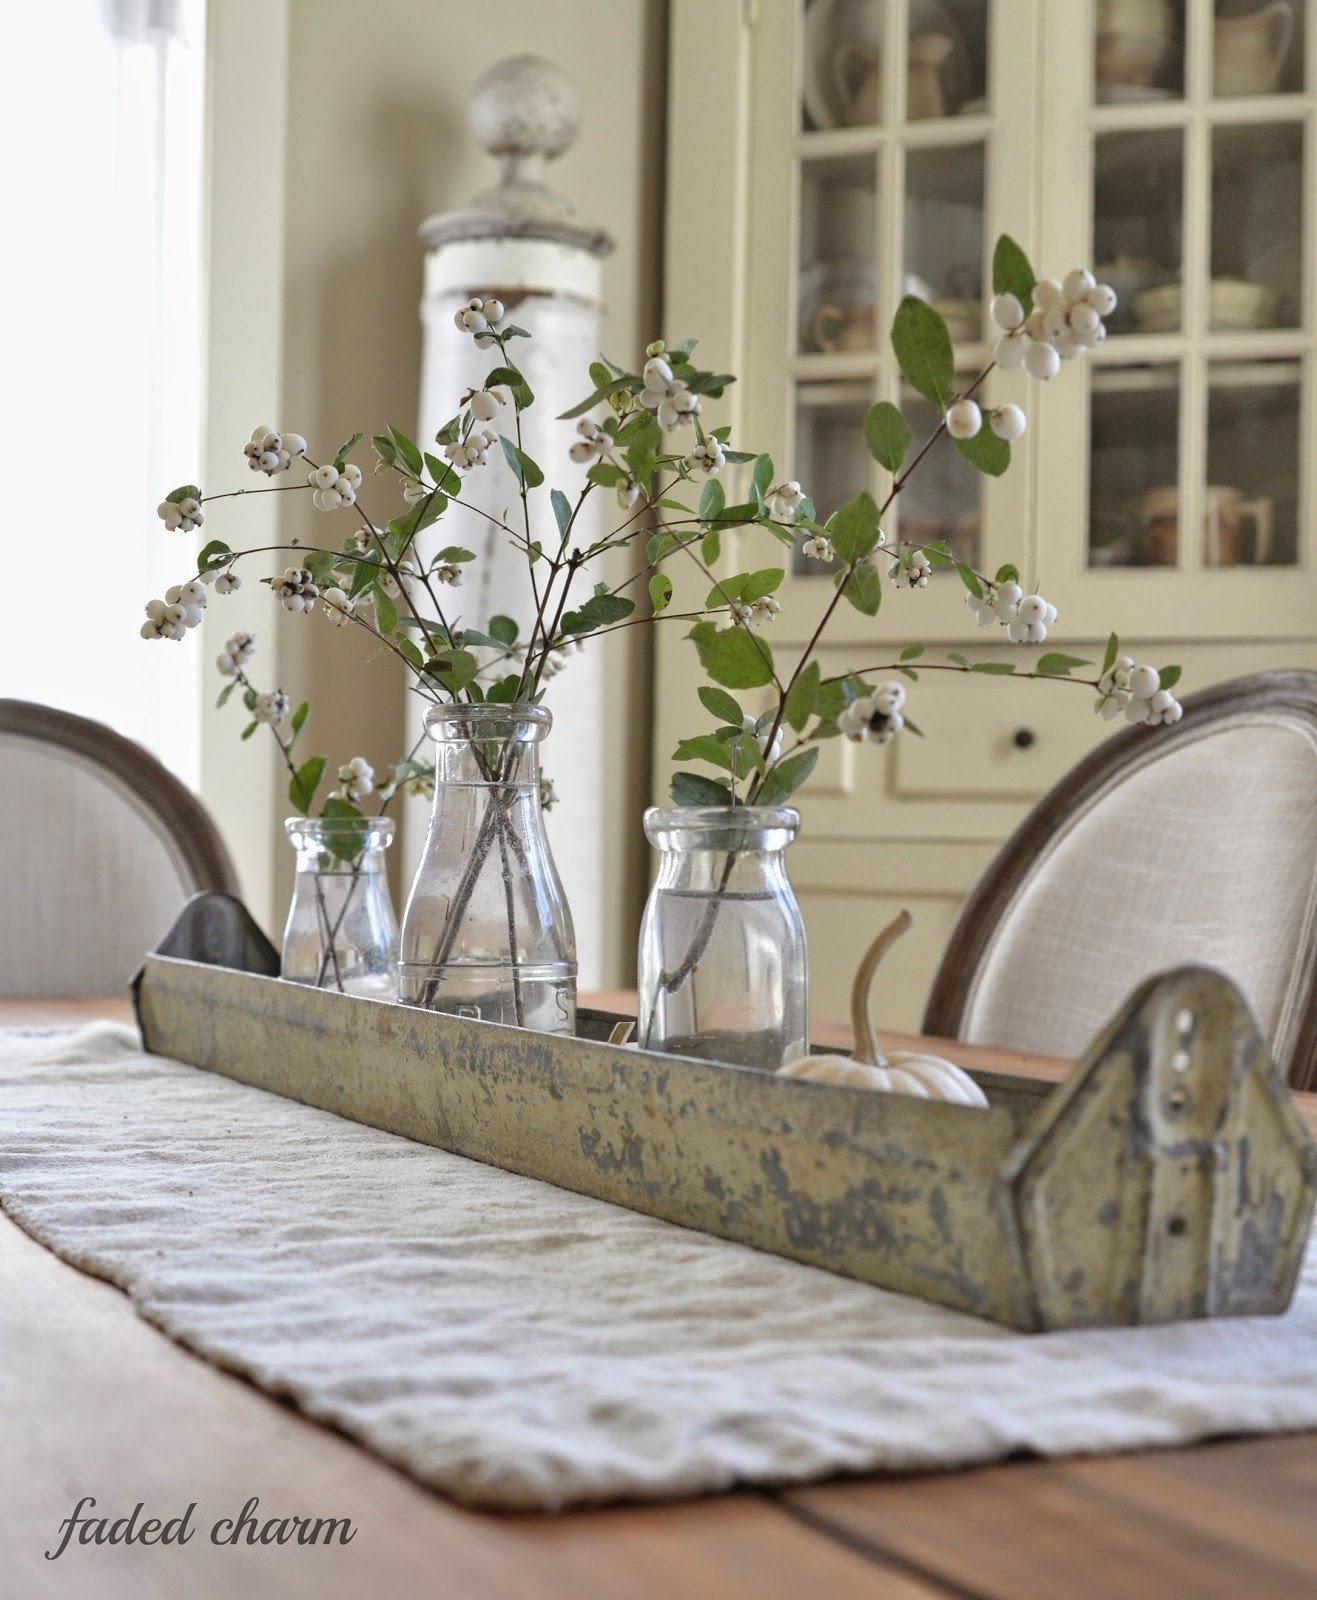 Decor Dining Room Table Centerpiece Elegant Dining Table Decor for An Everyday Look Tidbits&twine